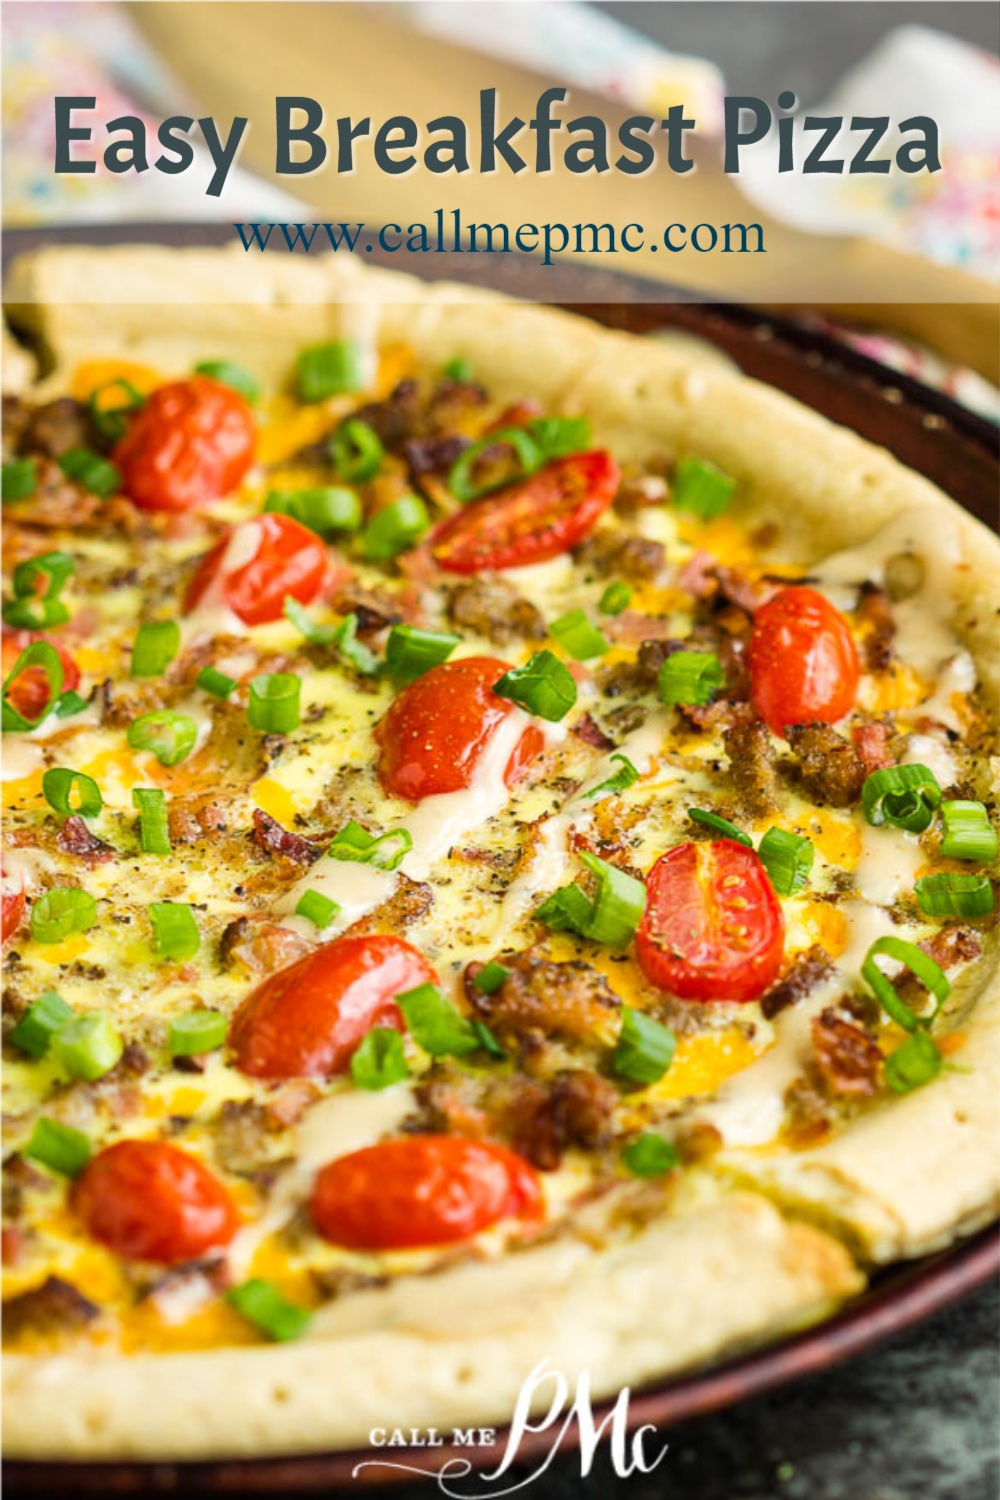 Easy Breakfast Pizza has fluffy eggs, cheese, sausage, ham, bacon on a thick and chewy crust! Sausage Breakfast Pizza with eggs recipe #sausage #bacon #ham #eggs #breakfast #brunch #pizza #breakfastpizza #recipe #callmepmc